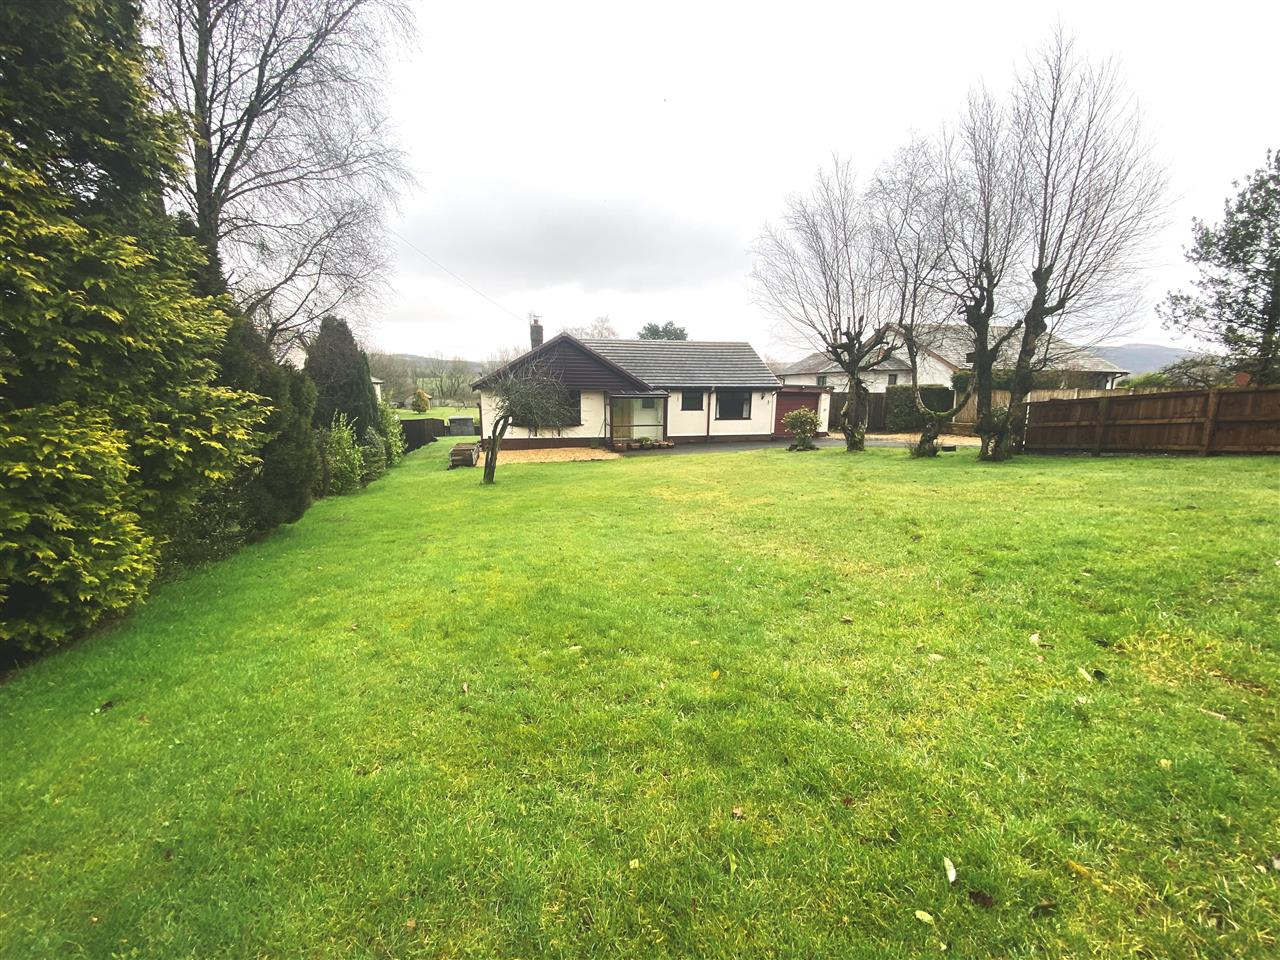 4 bed bungalow to rent in Robin Hill, Long Lane, Adlington, PR6